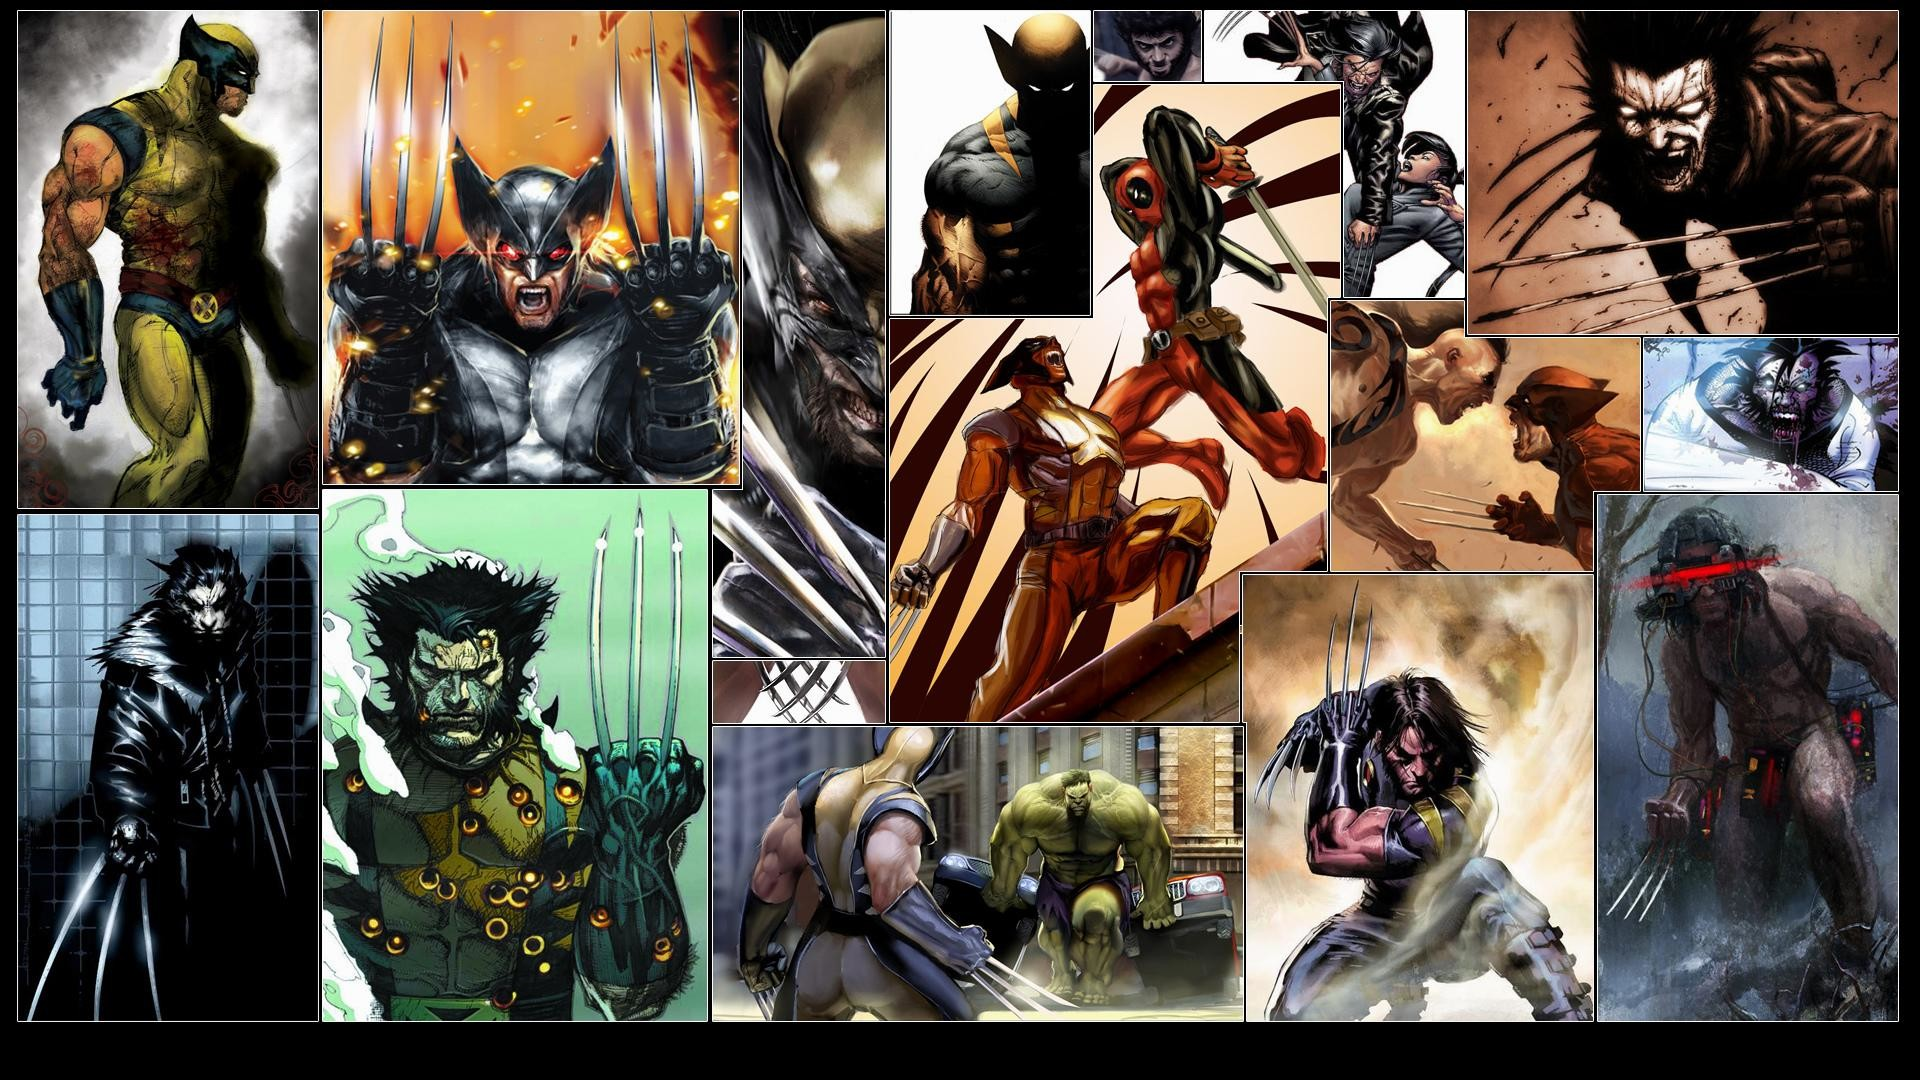 1920x1080 Comics-Wolverine-Deadpool-Hulk-wallpaper-wp4004579